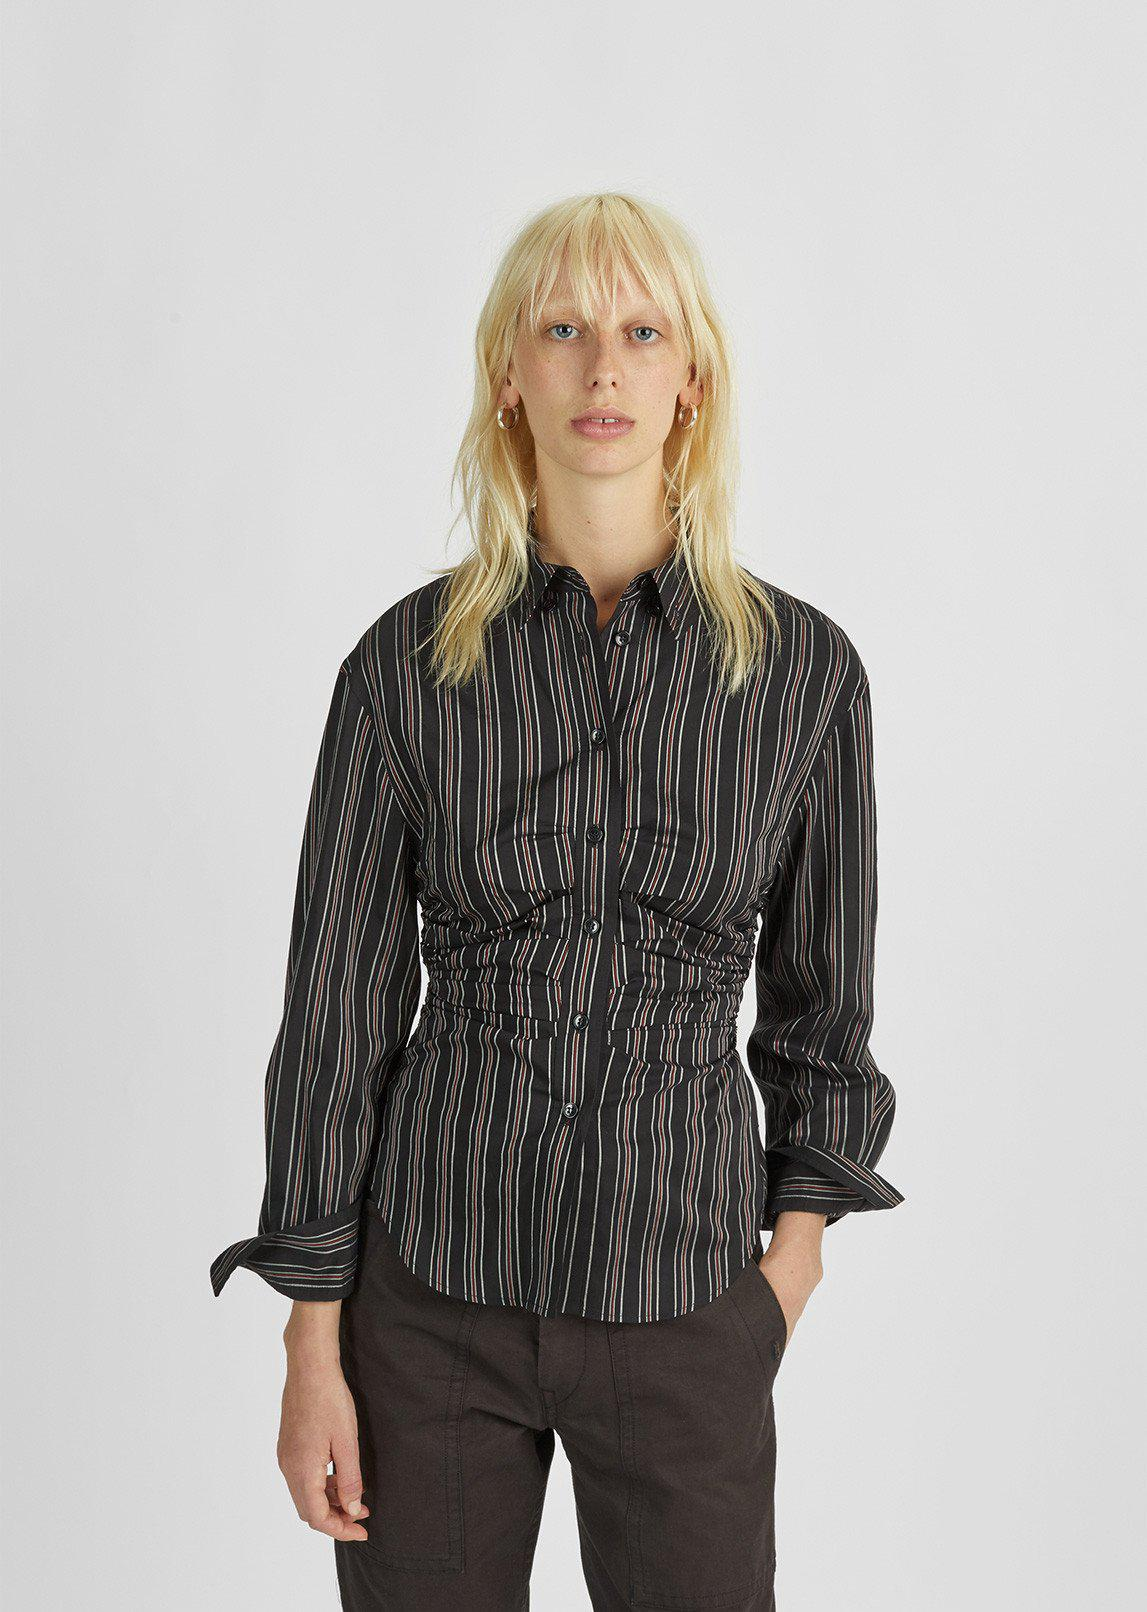 Clearance Inexpensive Isabel Marant Woman Gathered Printed Silk-satin Top Black Size 38 Isabel Marant Clearance Big Discount Cheap Online Many Kinds Of Unisex Zl7EDd7xx